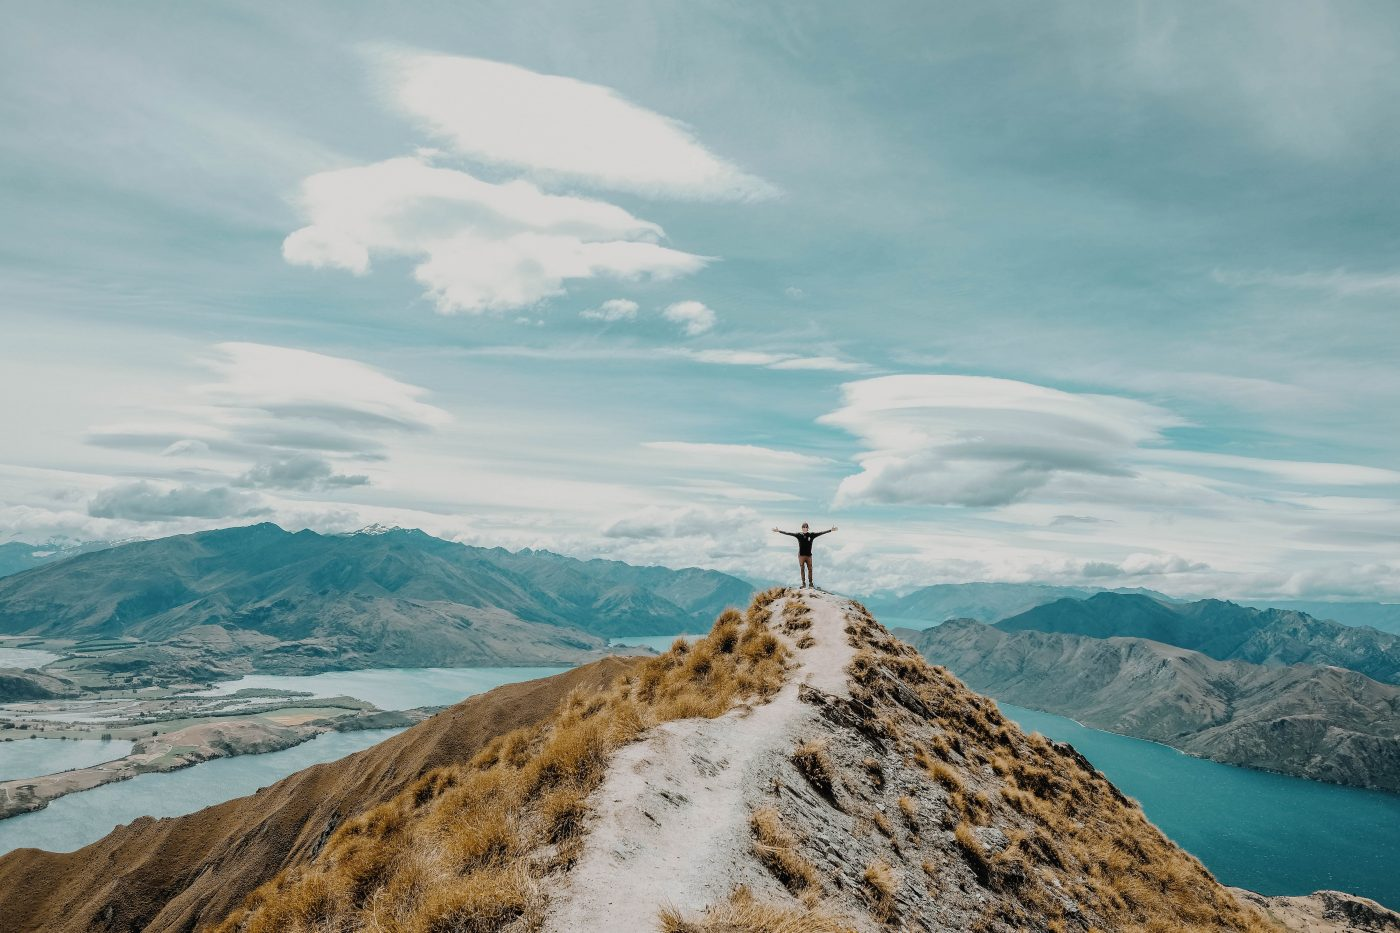 Roys Peak is a must see in New Zealand